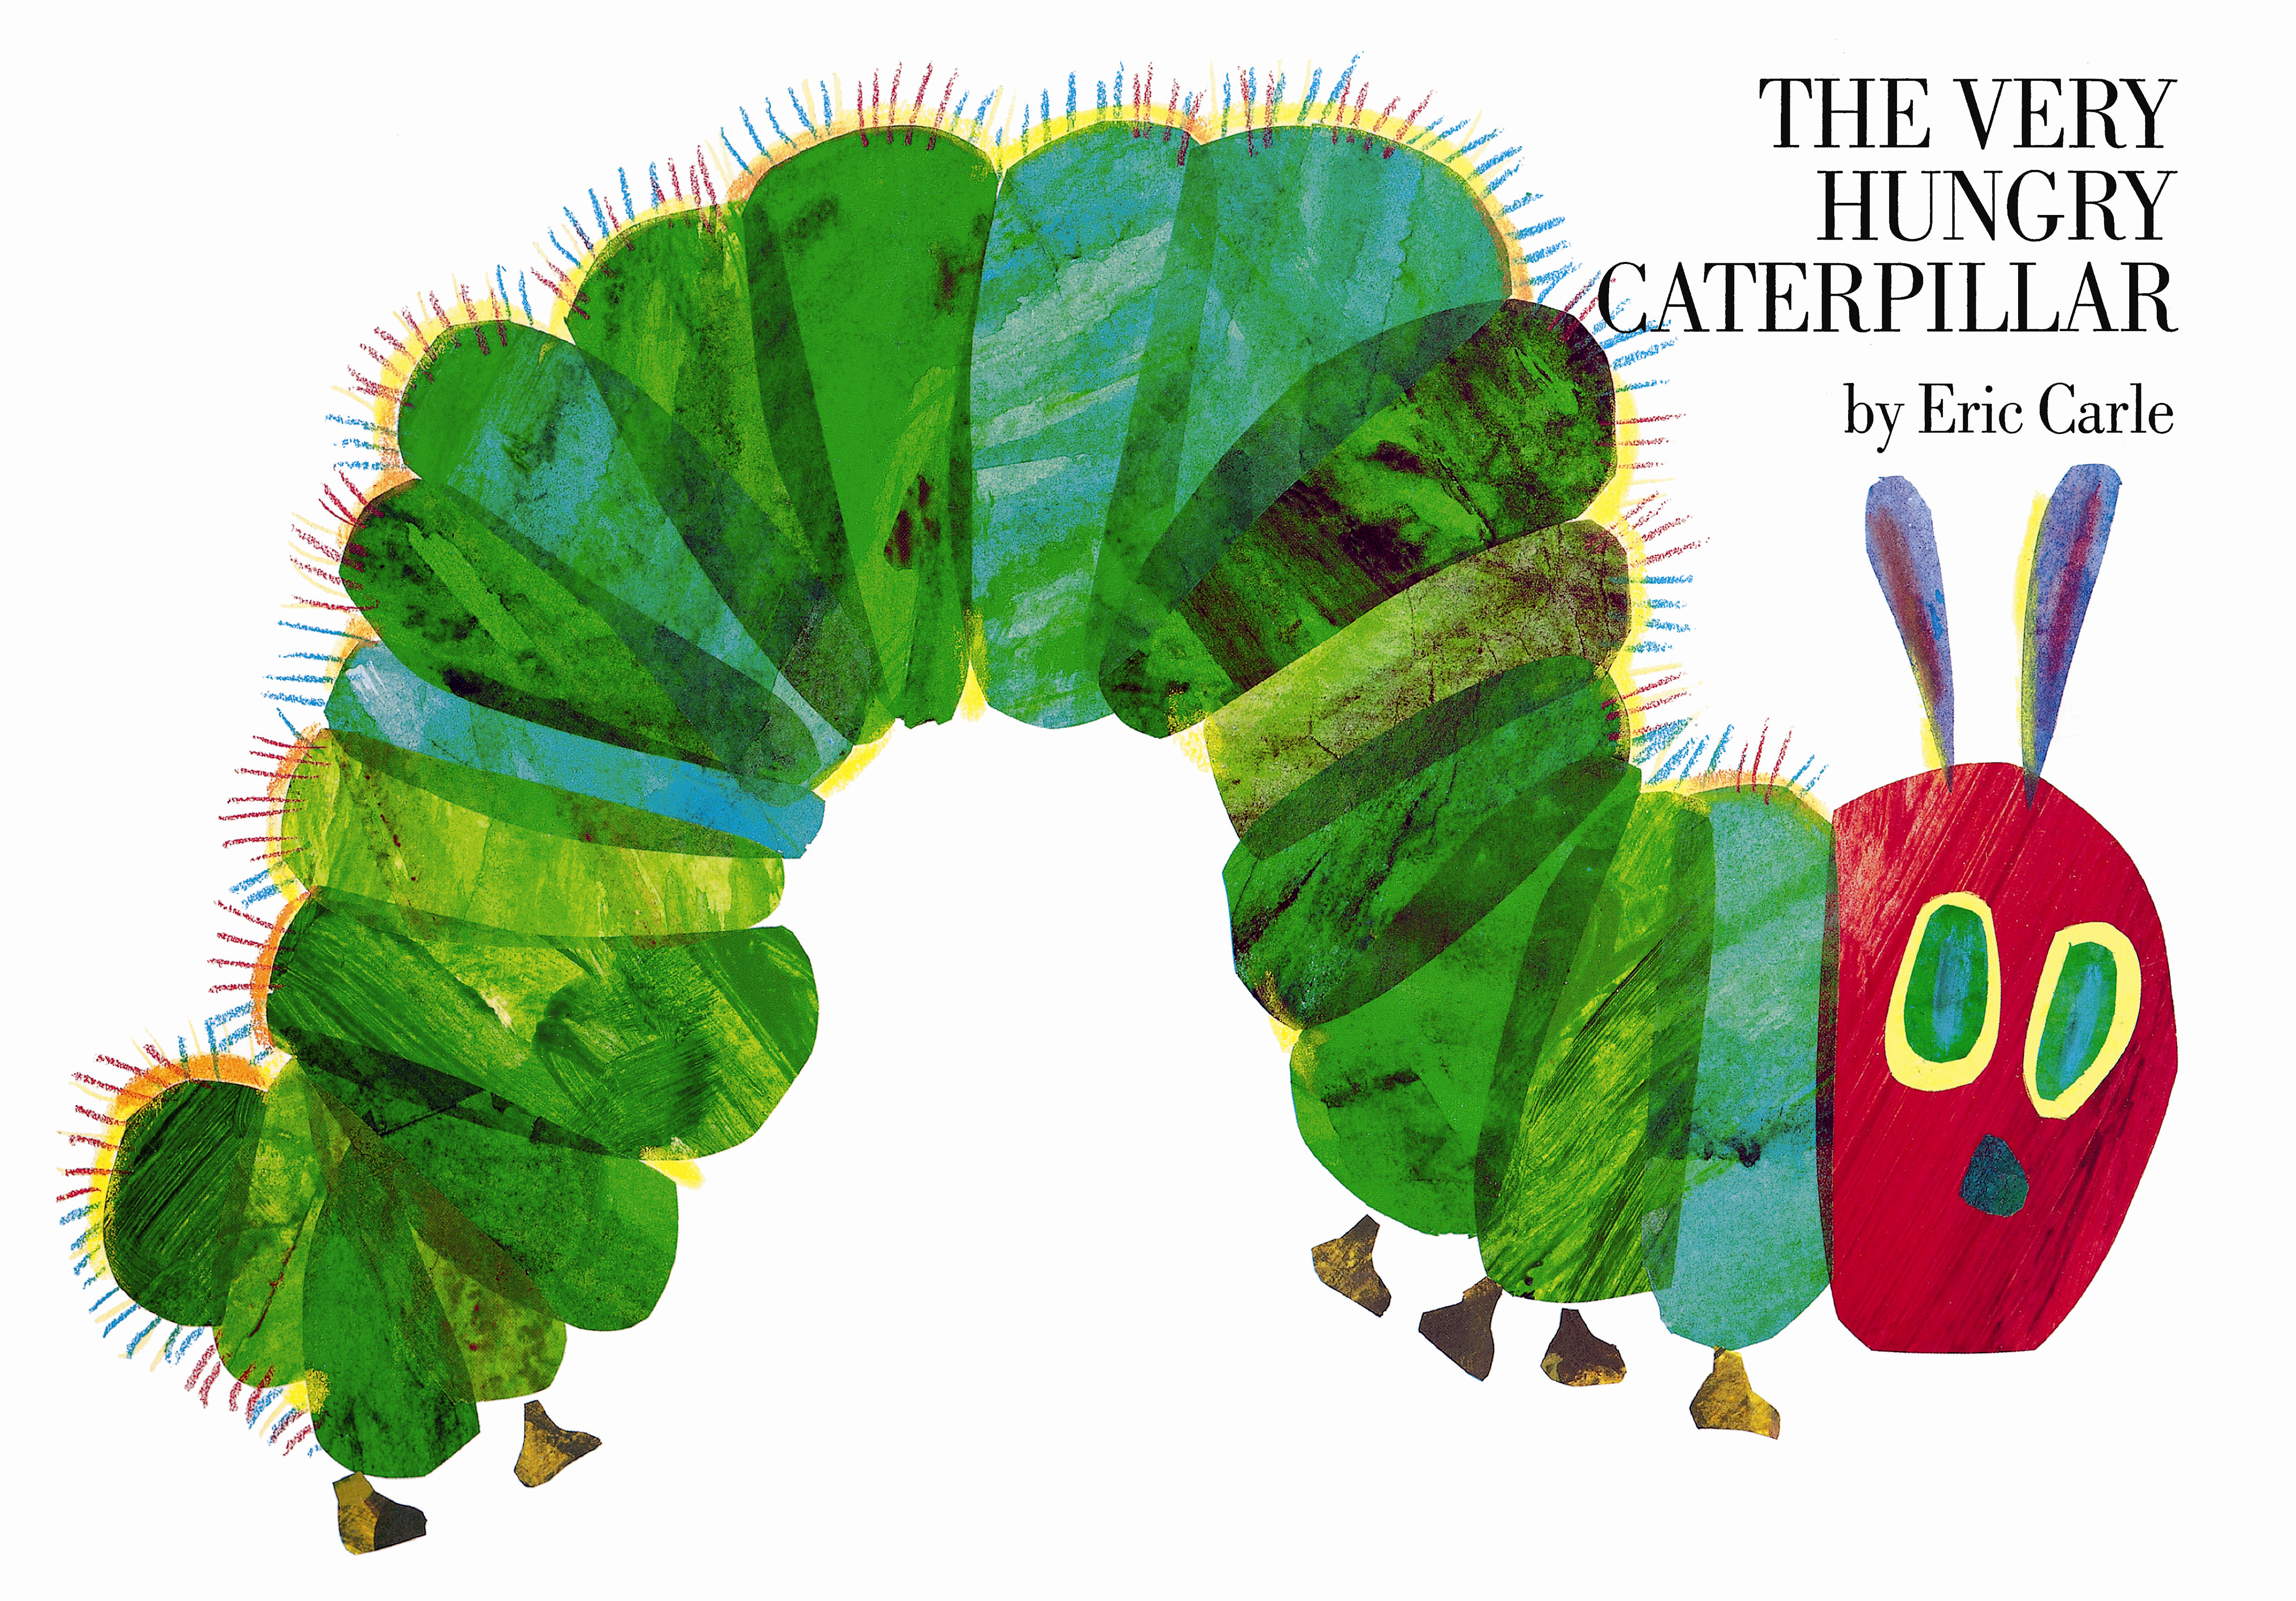 ATXONDO ENGLISH: ...the dogs...The Very Hungry Caterpillar |Hungry Caterpillar Book